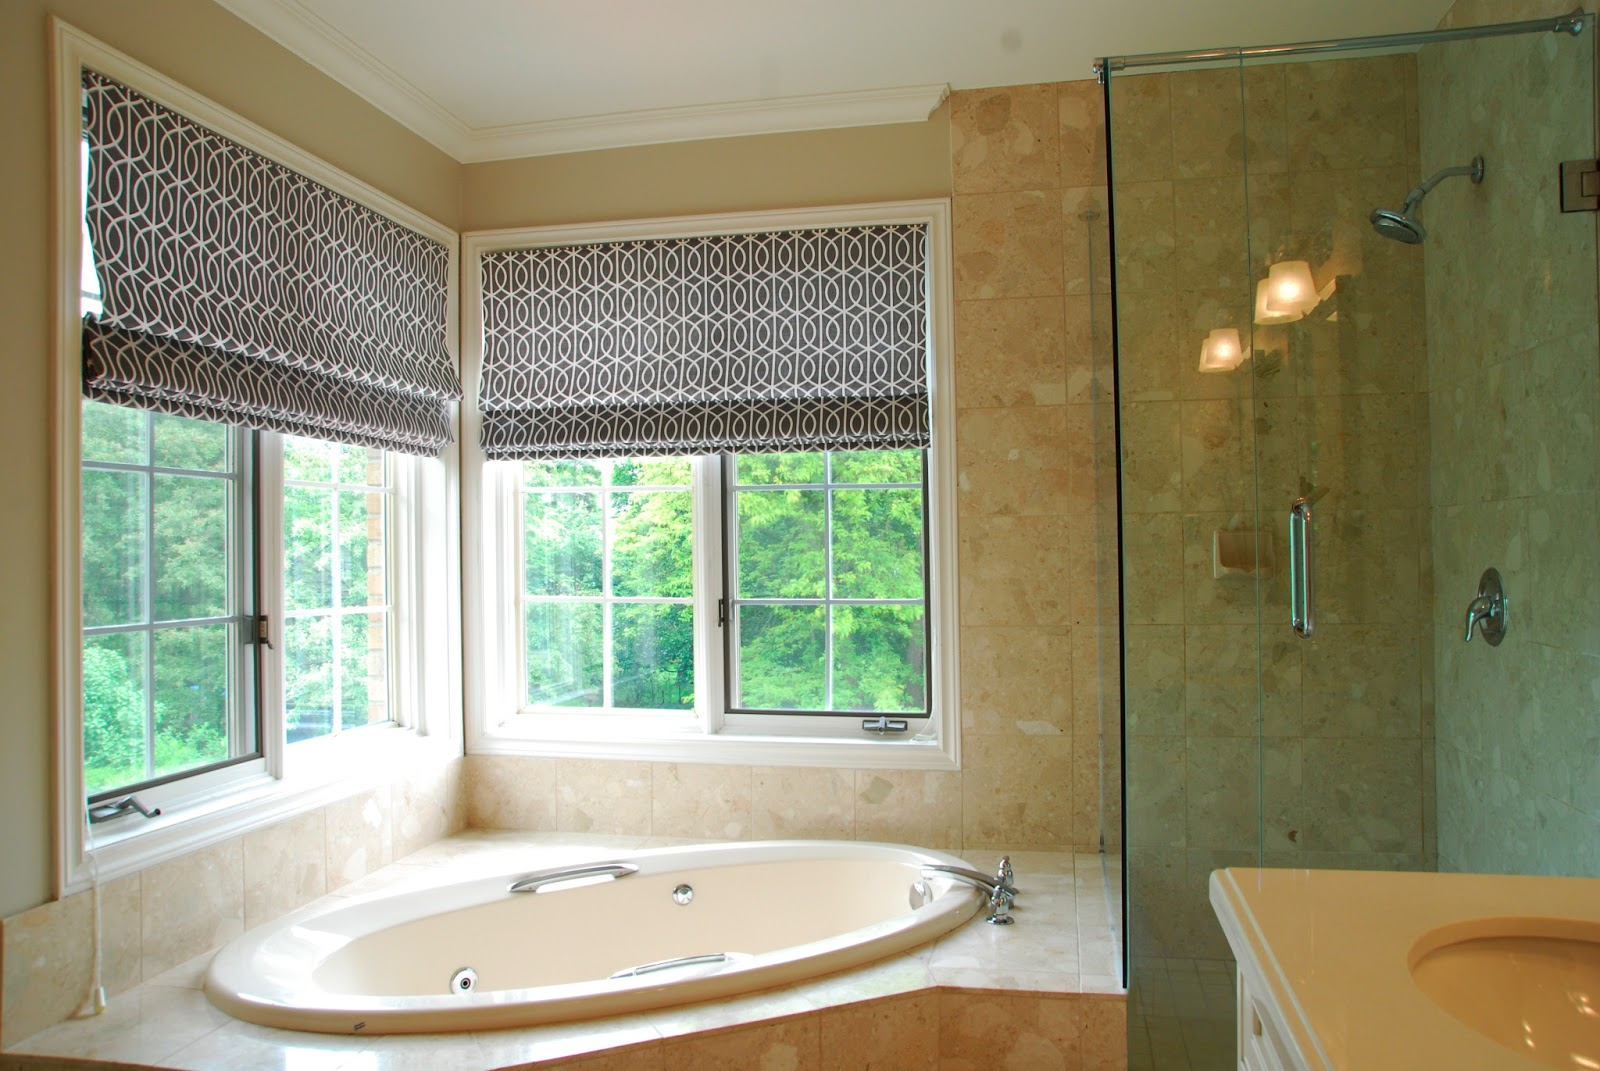 My work master bathroom update rambling renovators for Bathroom updates